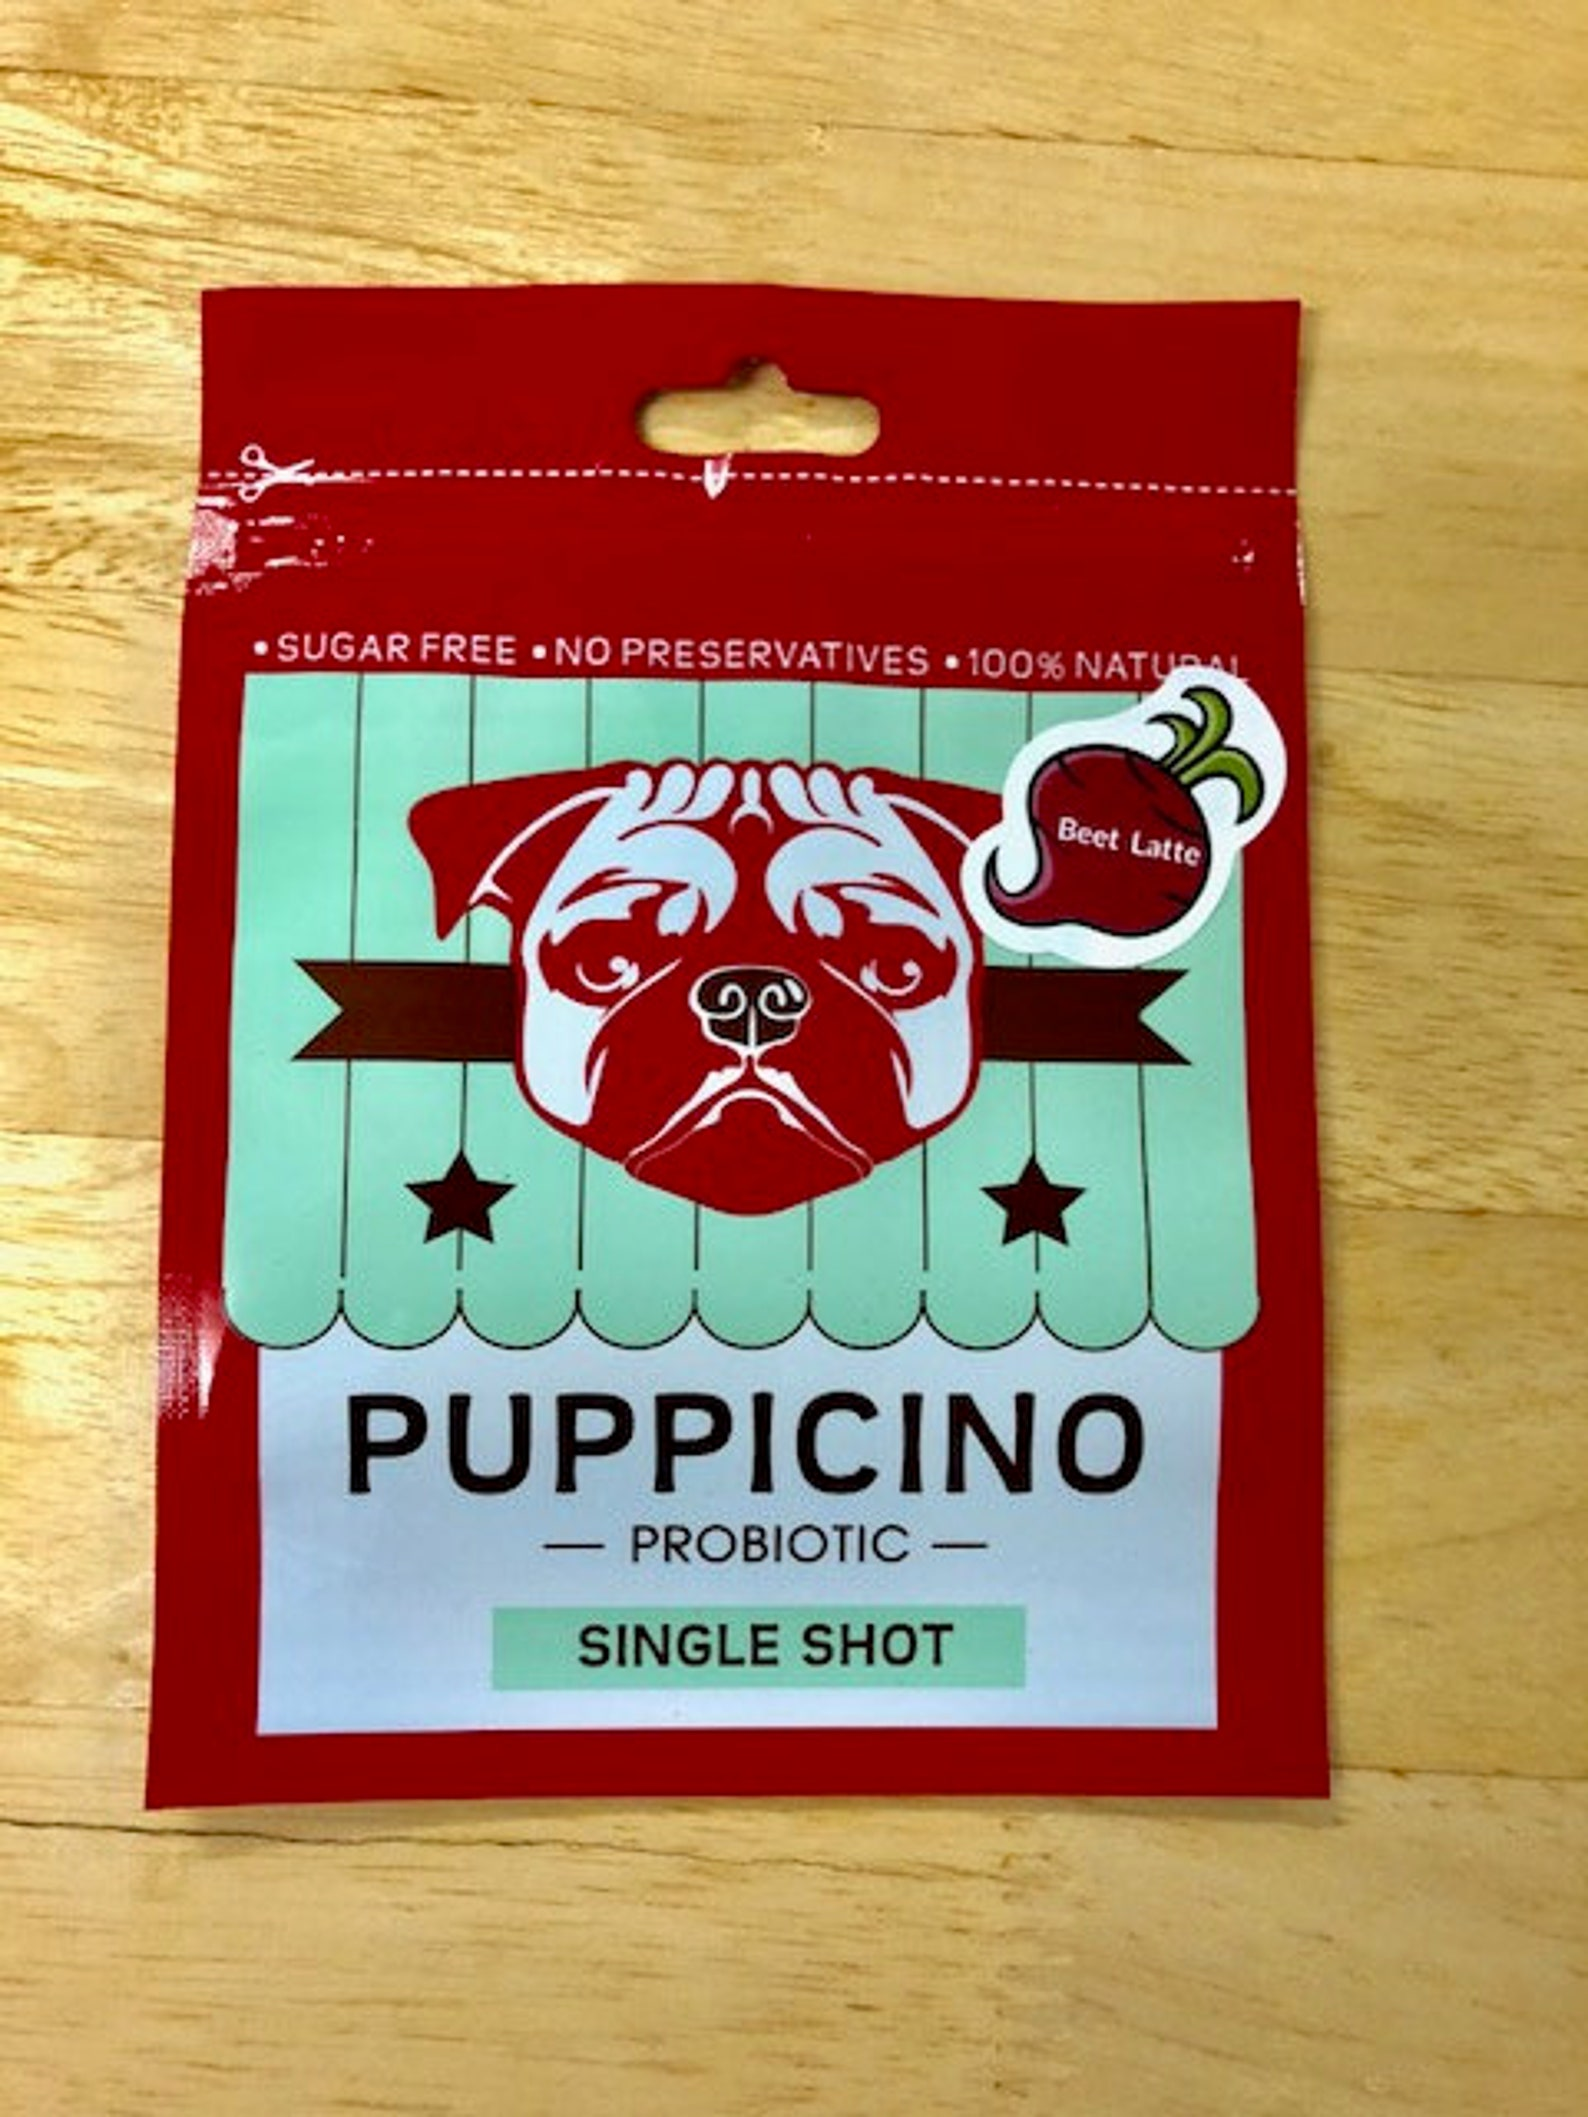 Packaged puppicino for dogs